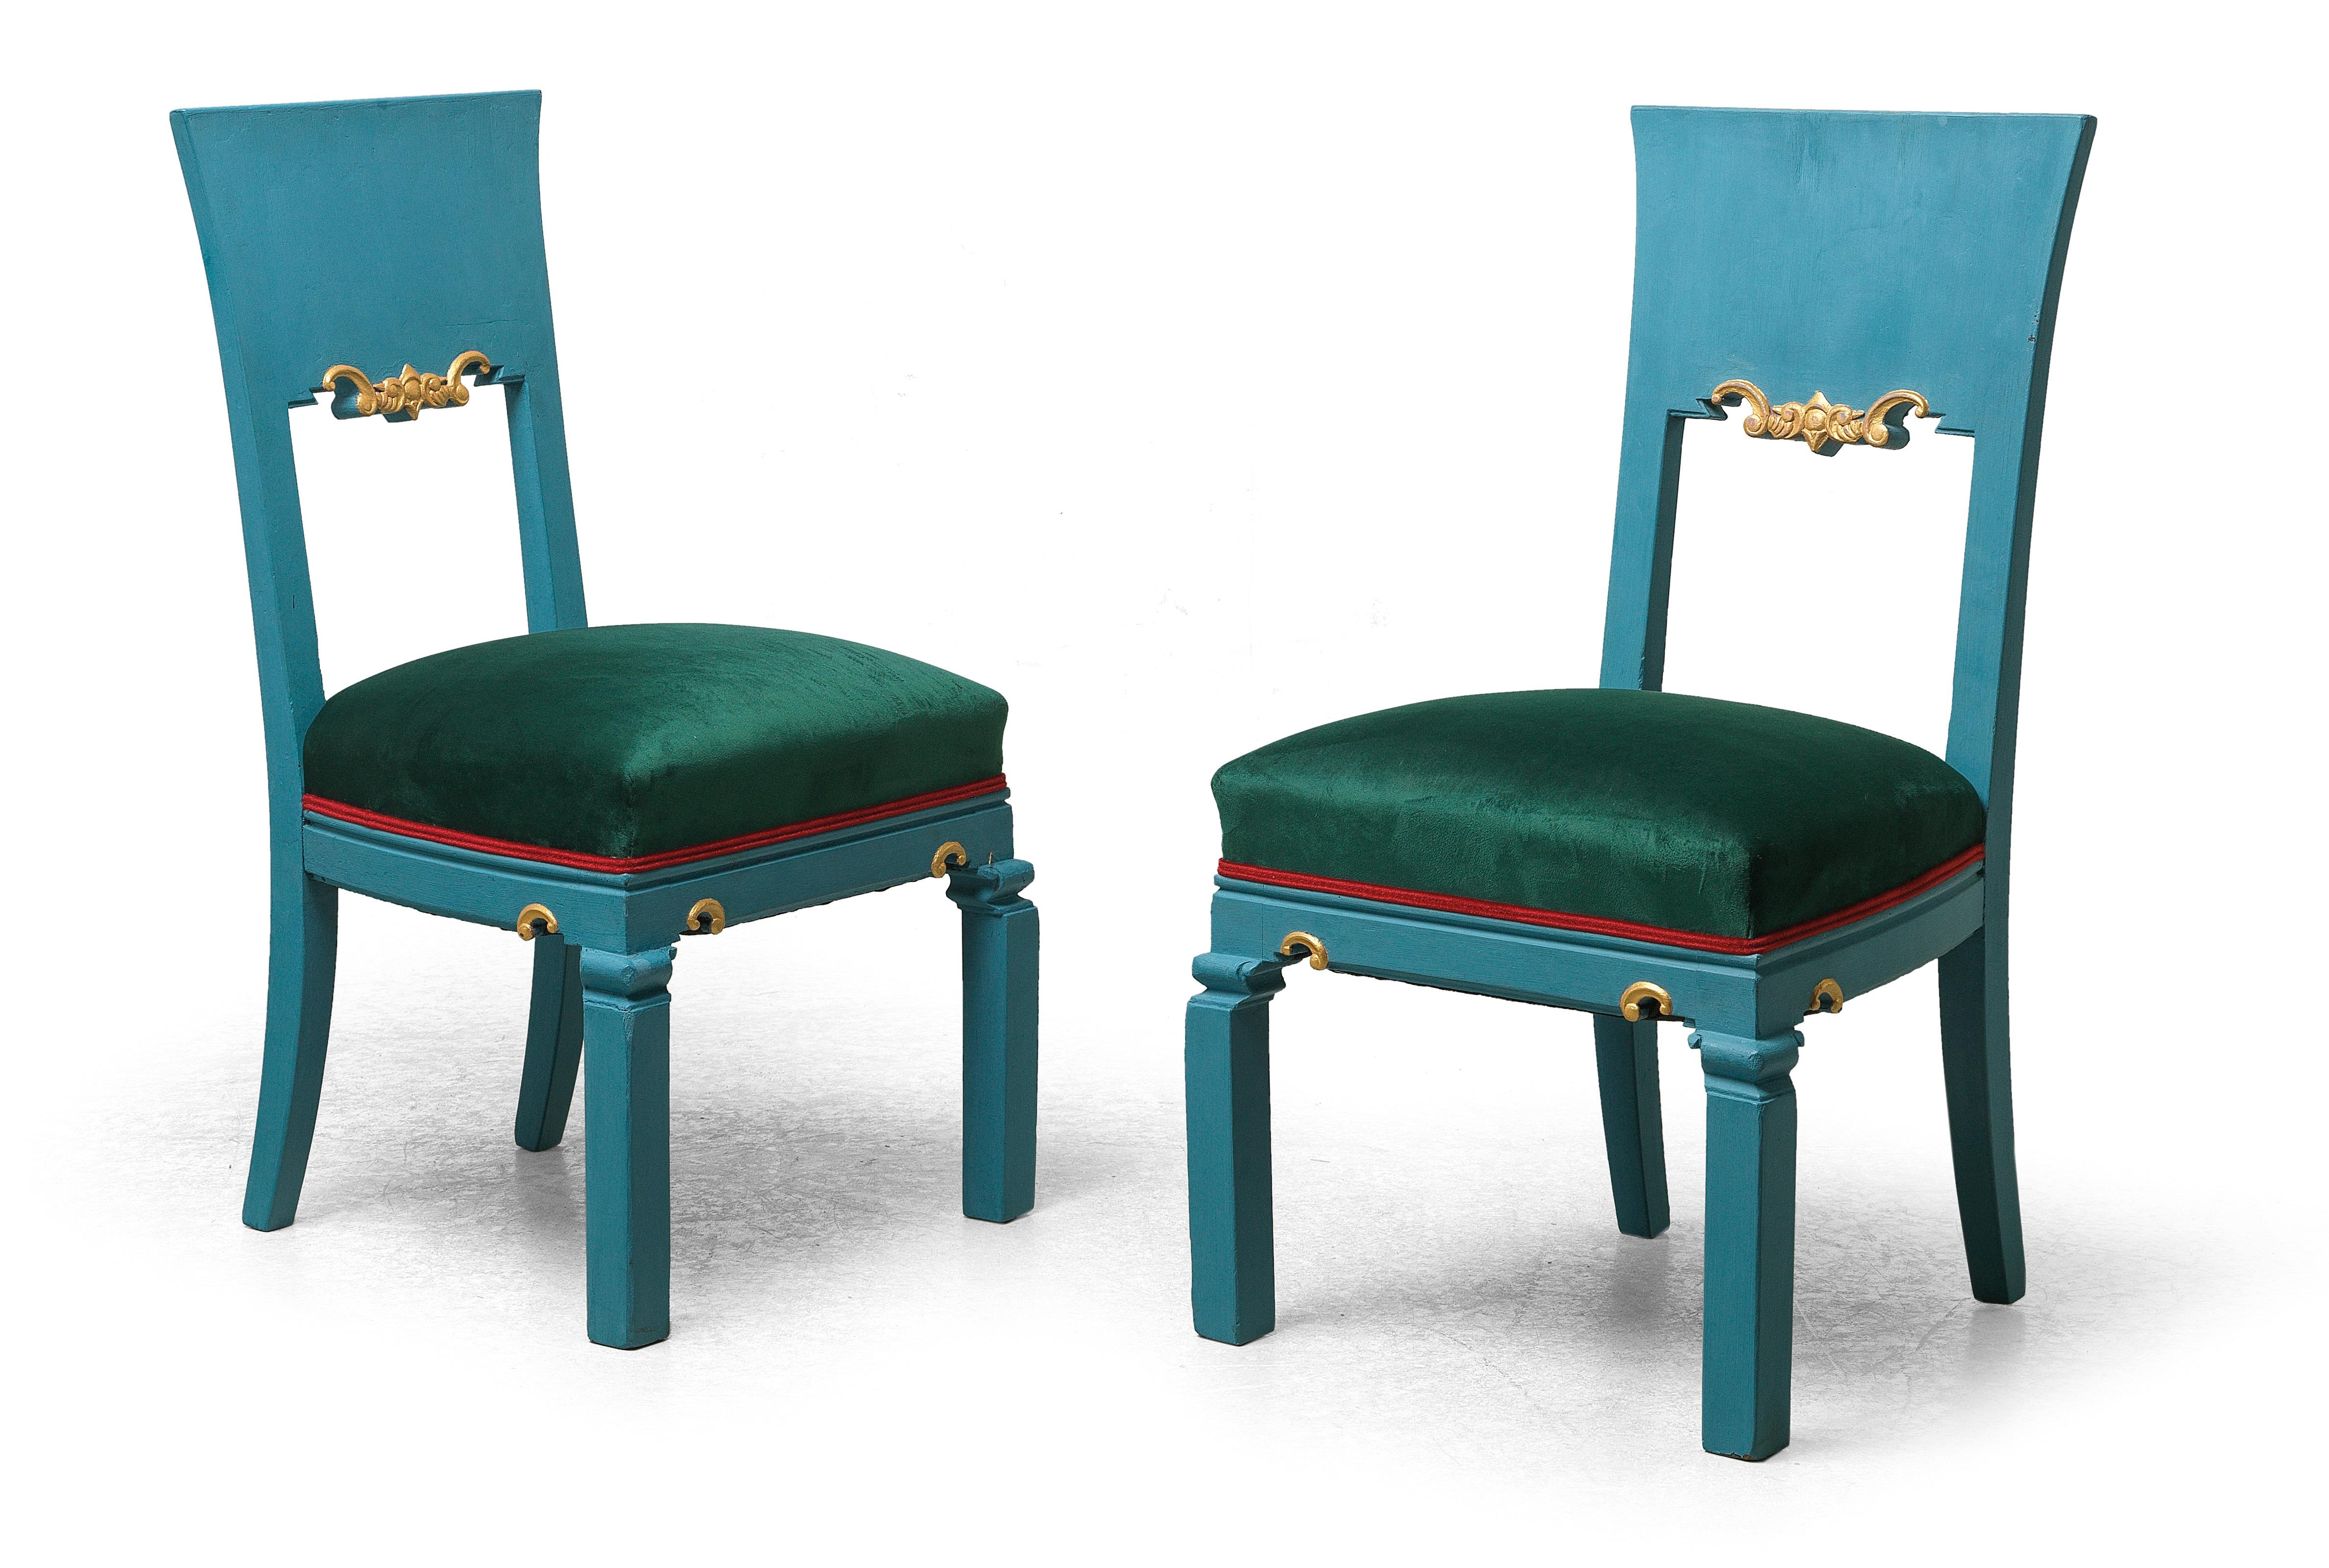 A Pair Of Art Deco Chairs Furniture And Decorative Art 2020 03 12 Estimate Eur 1 400 To Eur 1 800 Dorotheum